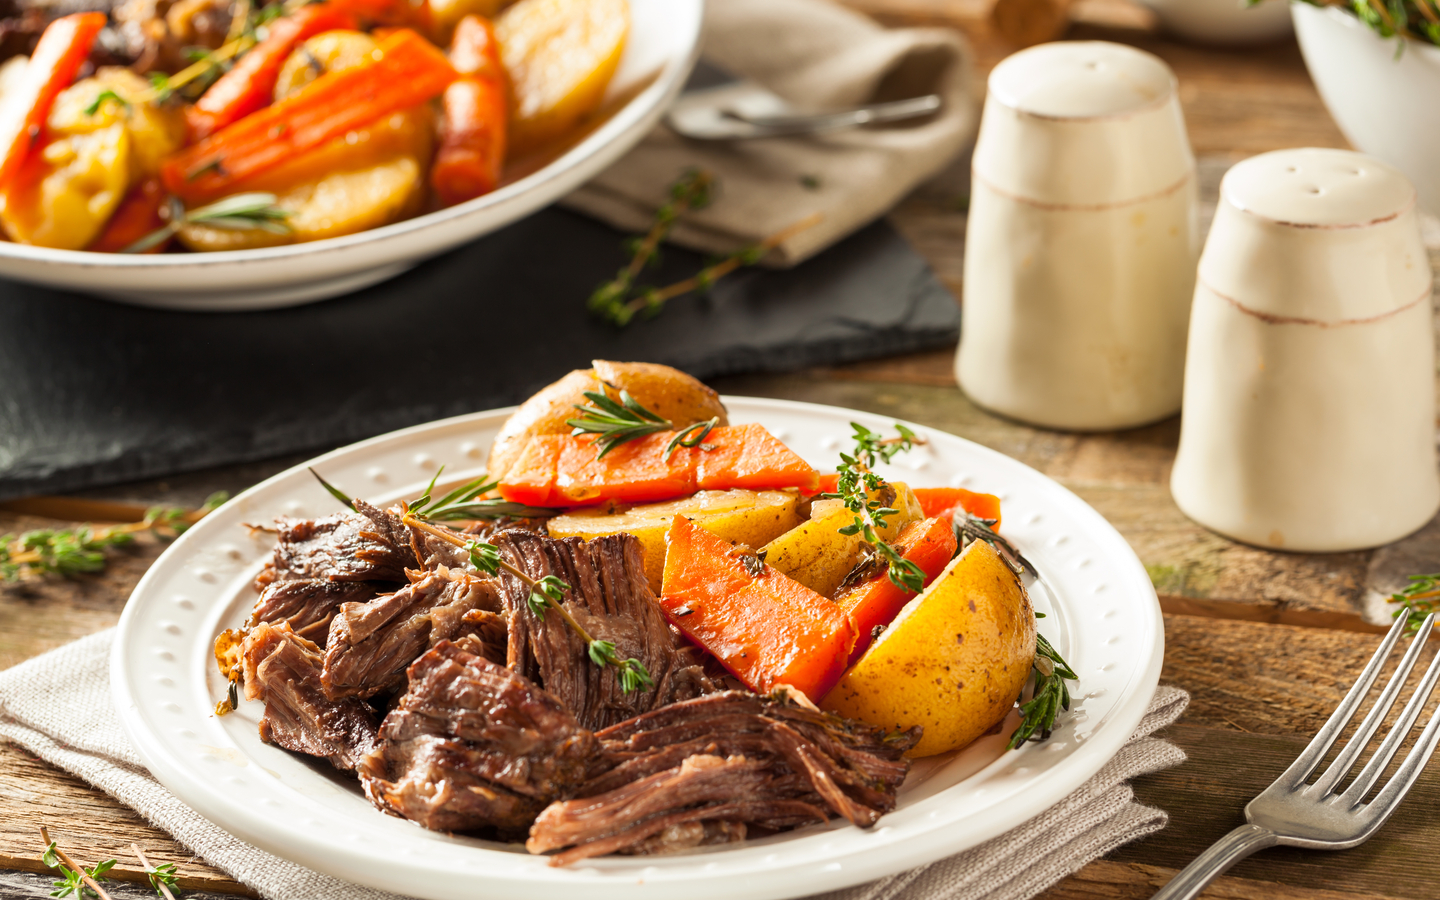 Thereed: Meat with slow-roasted vegetables